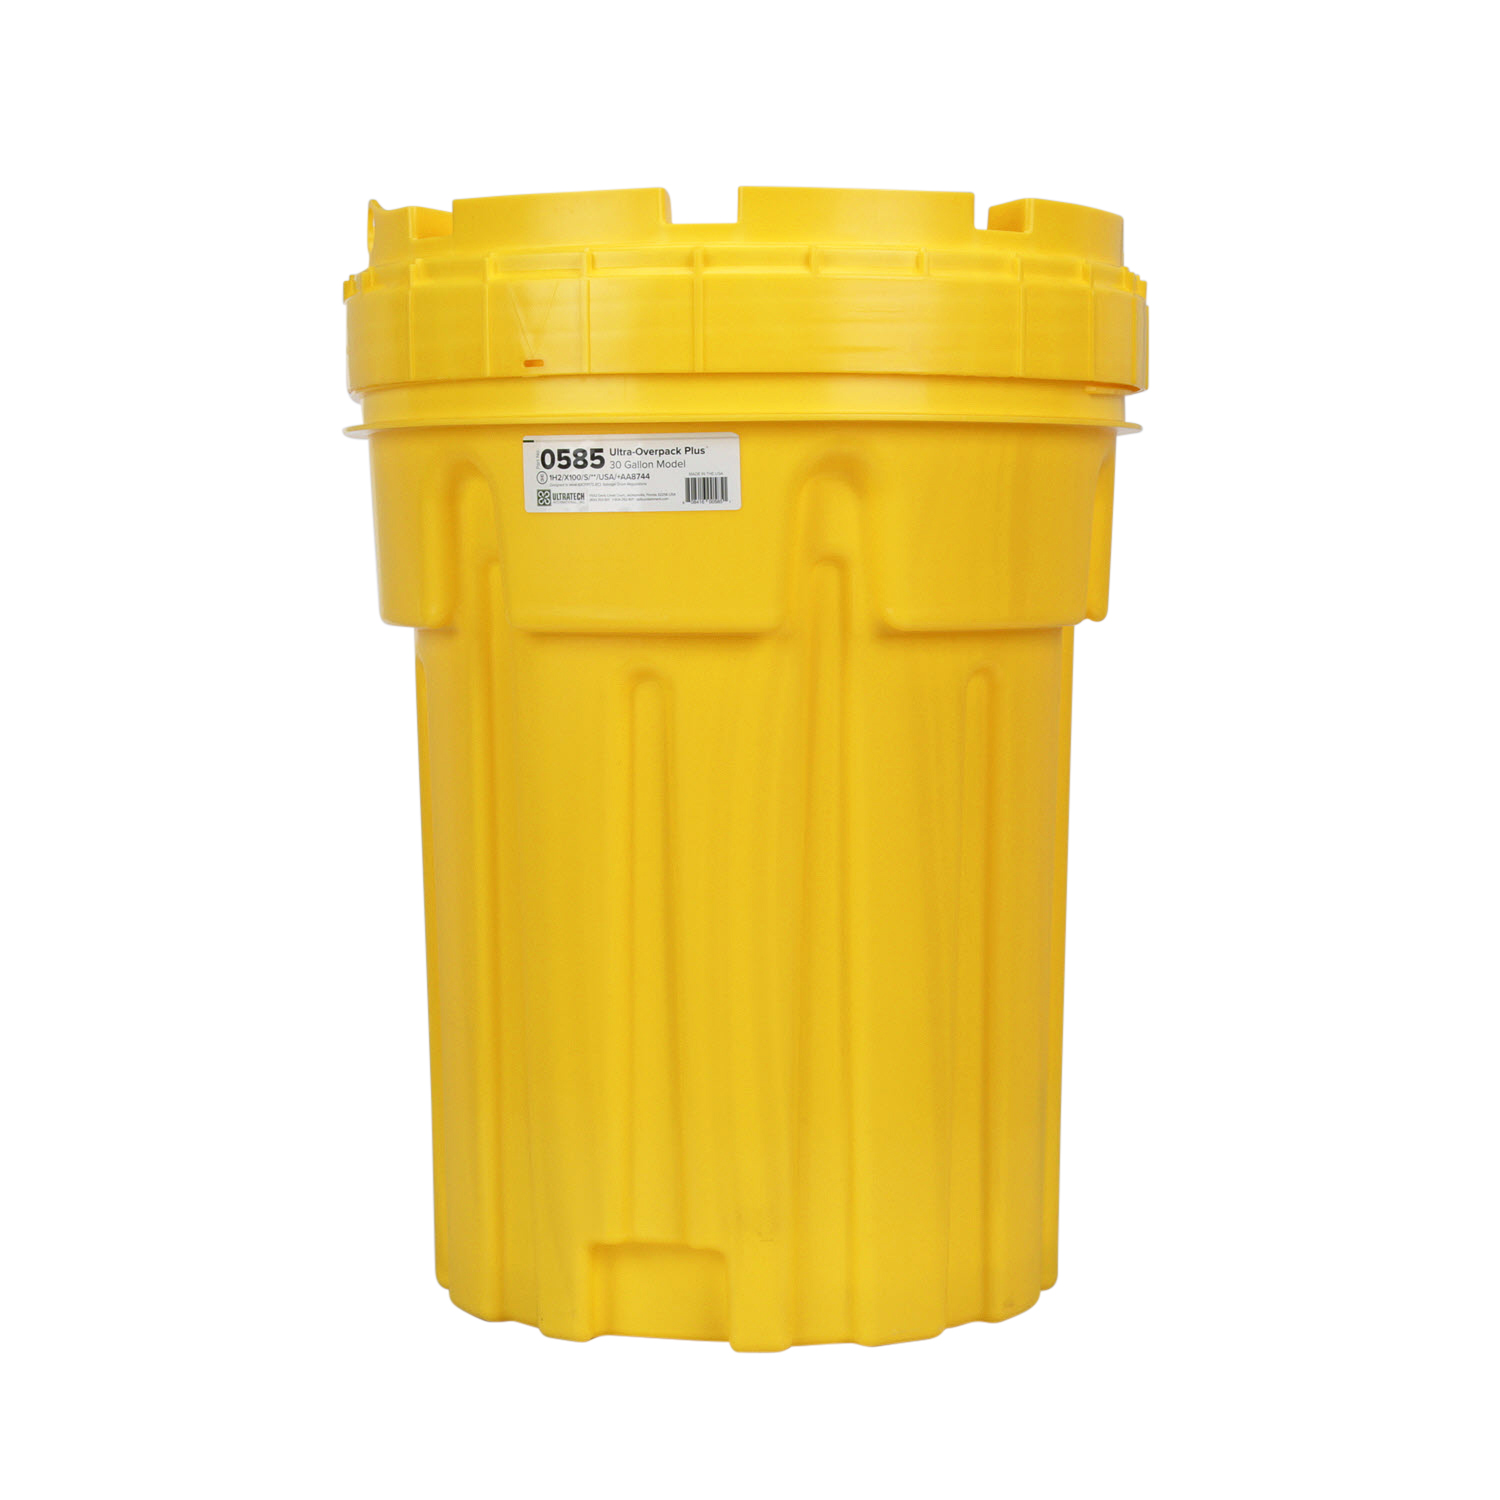 SPILL KIT CHEMICAL 30 GALLON OVERPACK DRUM